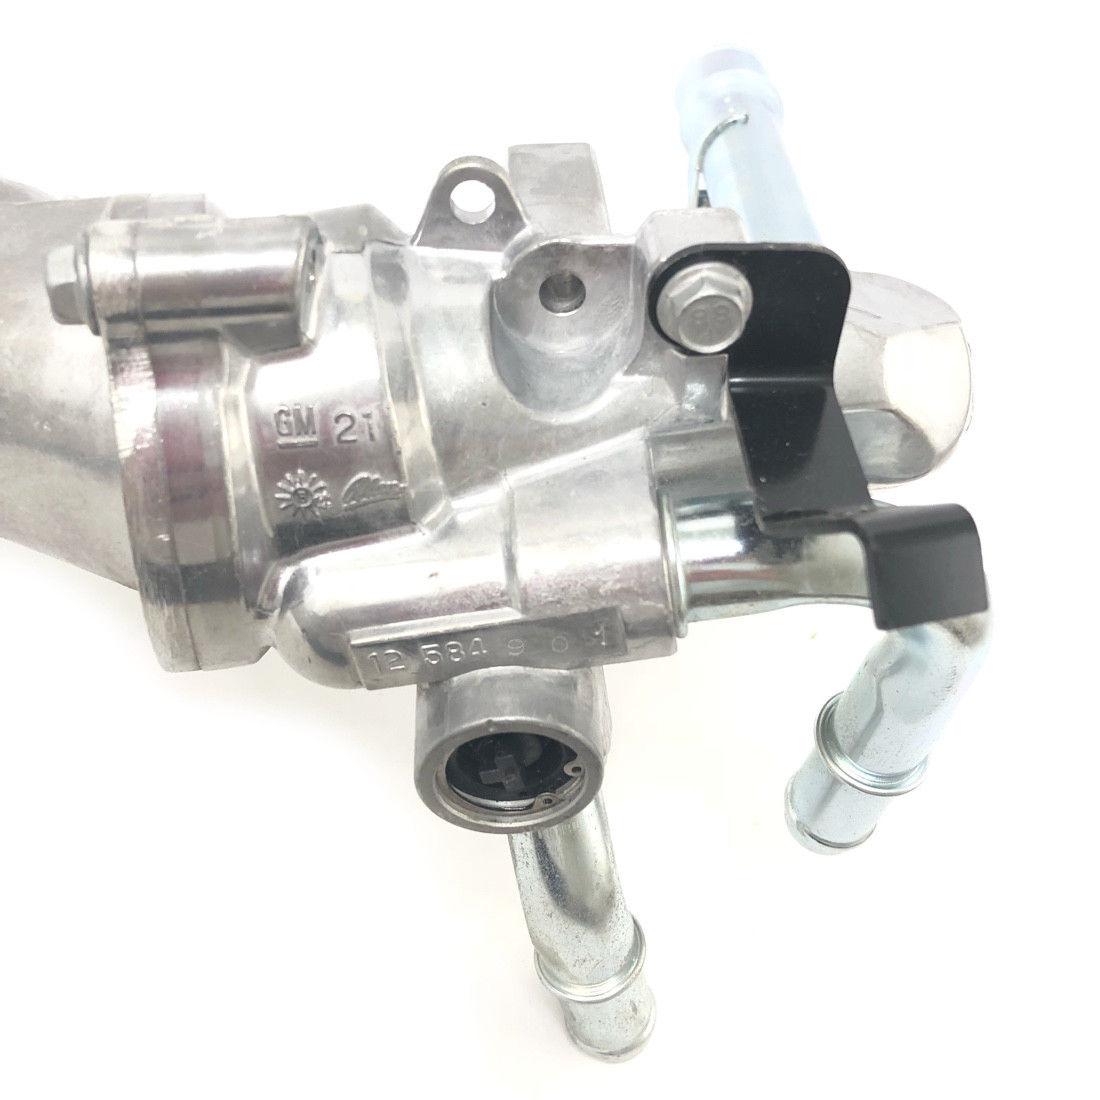 hight resolution of new gm 2 2l coolant housing thermostat outlet pipe assembly 24447273 15 10576